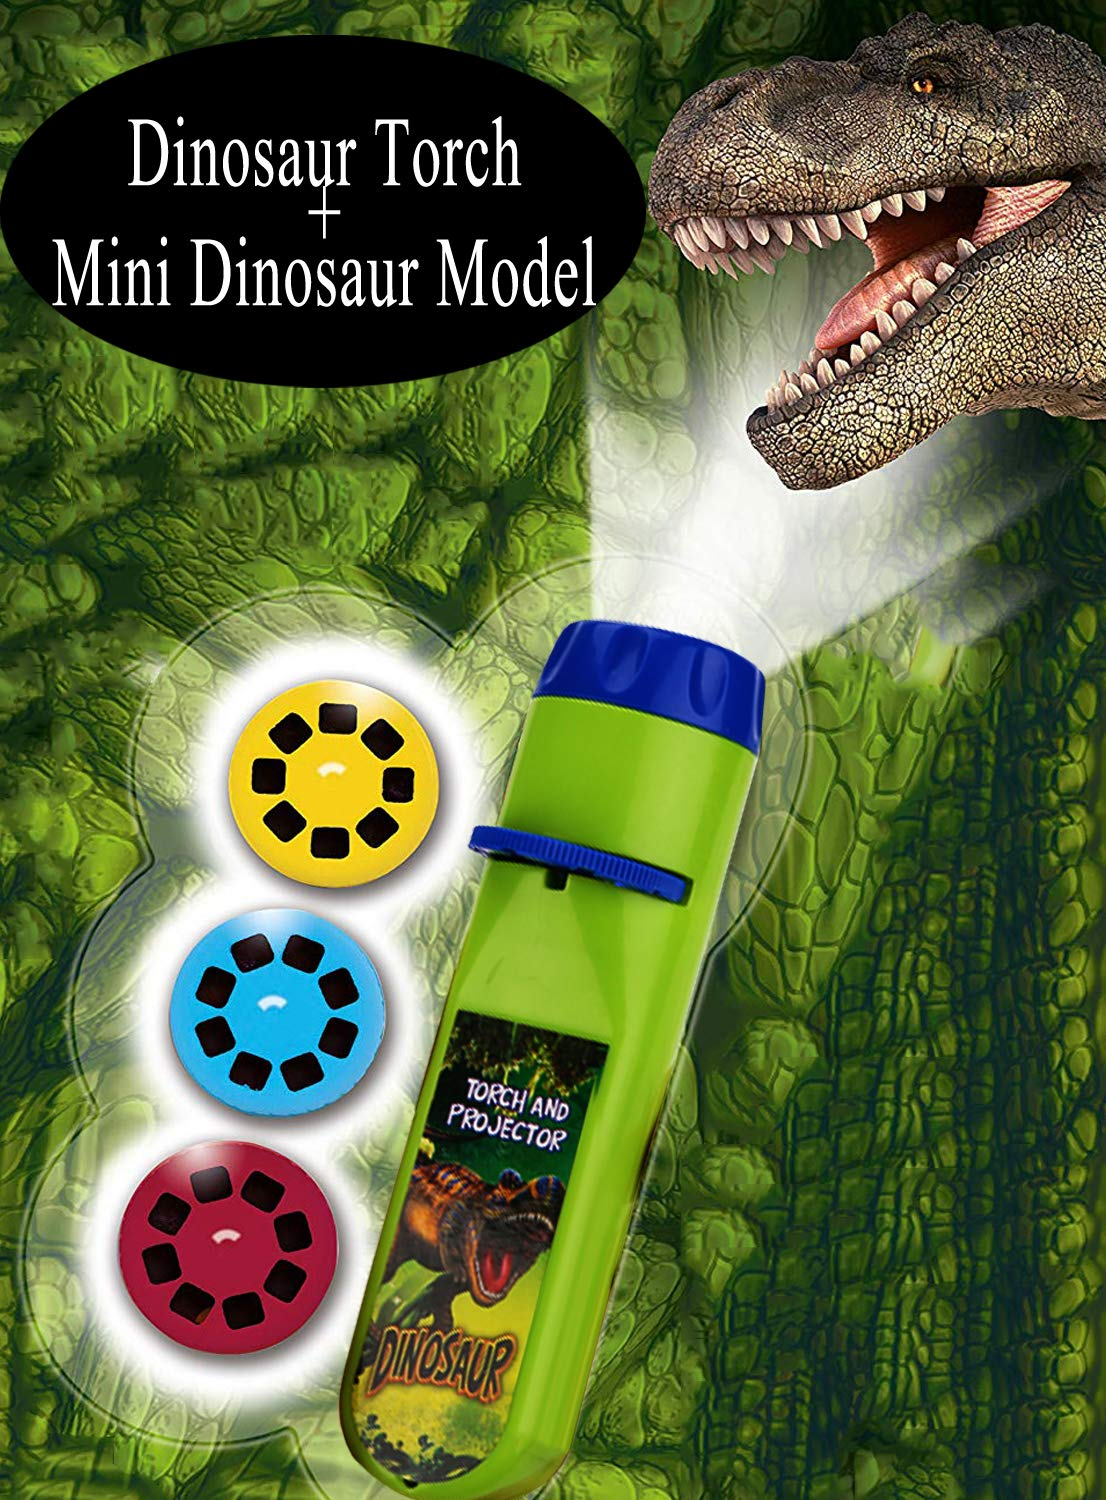 Hualedi Dinosaur Toys Set, Dinosaur Torch and Projector+[10 Pack] Mini Dinosaur Model[2.5 in], Boy toys age 4-5, science toy for 3 4 5 year old